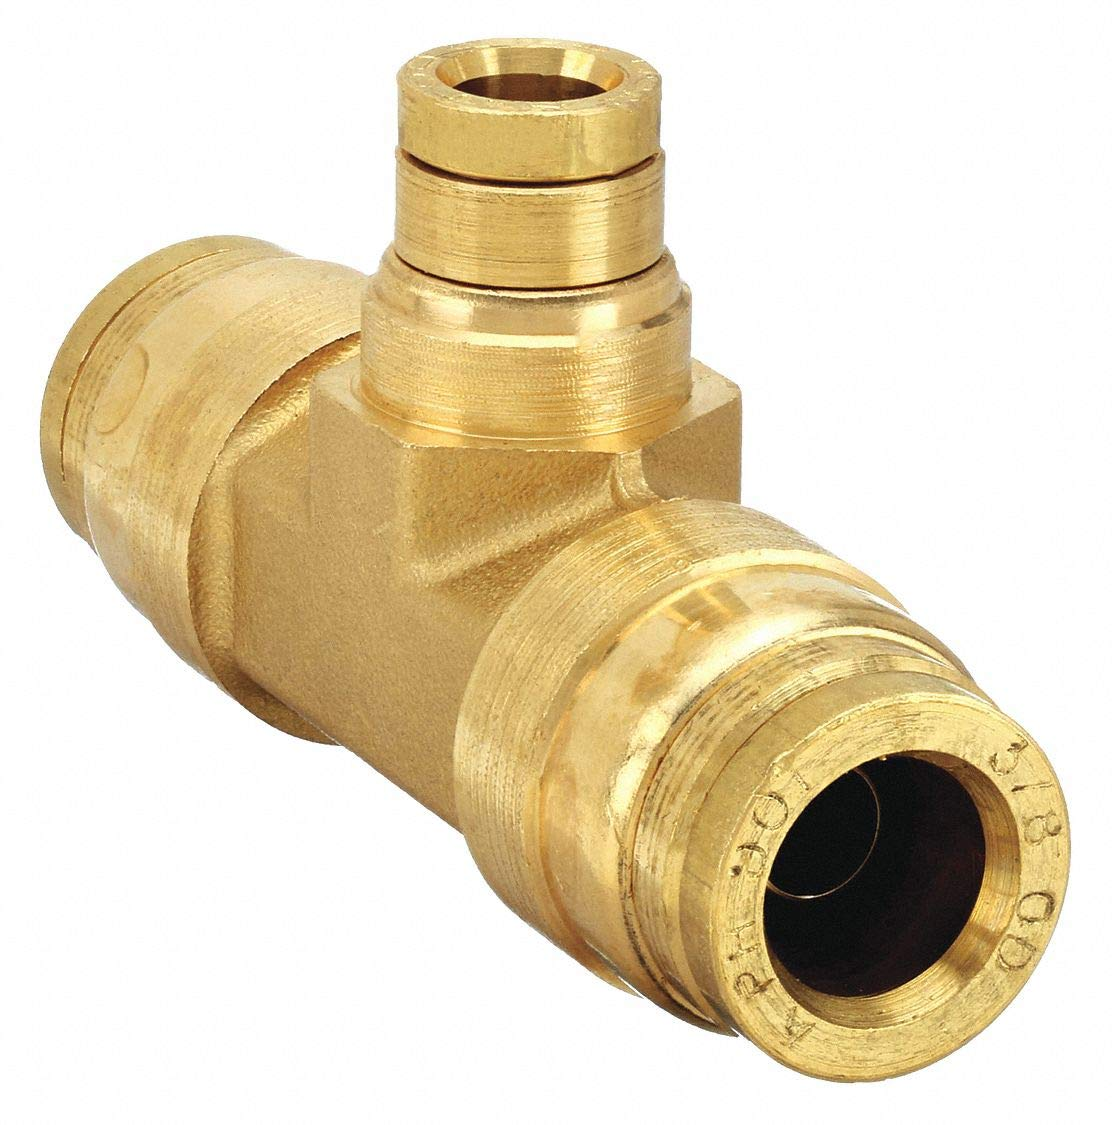 "Parker Hannifin 164PMT-6-6-4 Brass Union Tee Prestomatic Fitting, 3/8"" Push-to-Connect Tube x 1/4"" Push-to-Connect Tube"